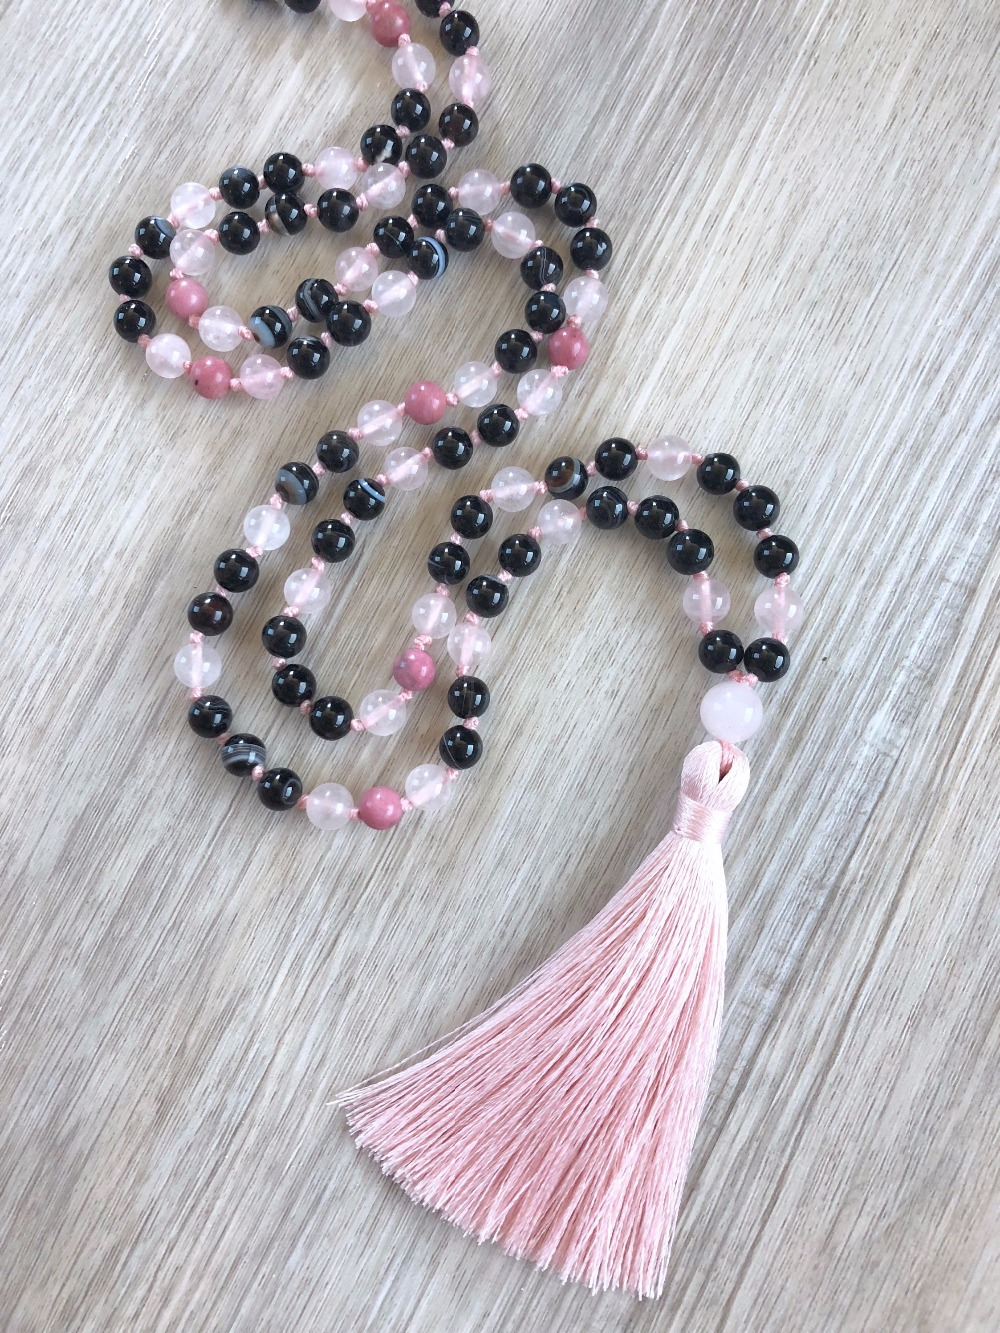 Auralite Macrame Necklace Knotted Beaded Necklace Pyrite /& Lepidolite Mala Beads 108 Mala Necklace: Auralite Amethyst Amethyst Mala